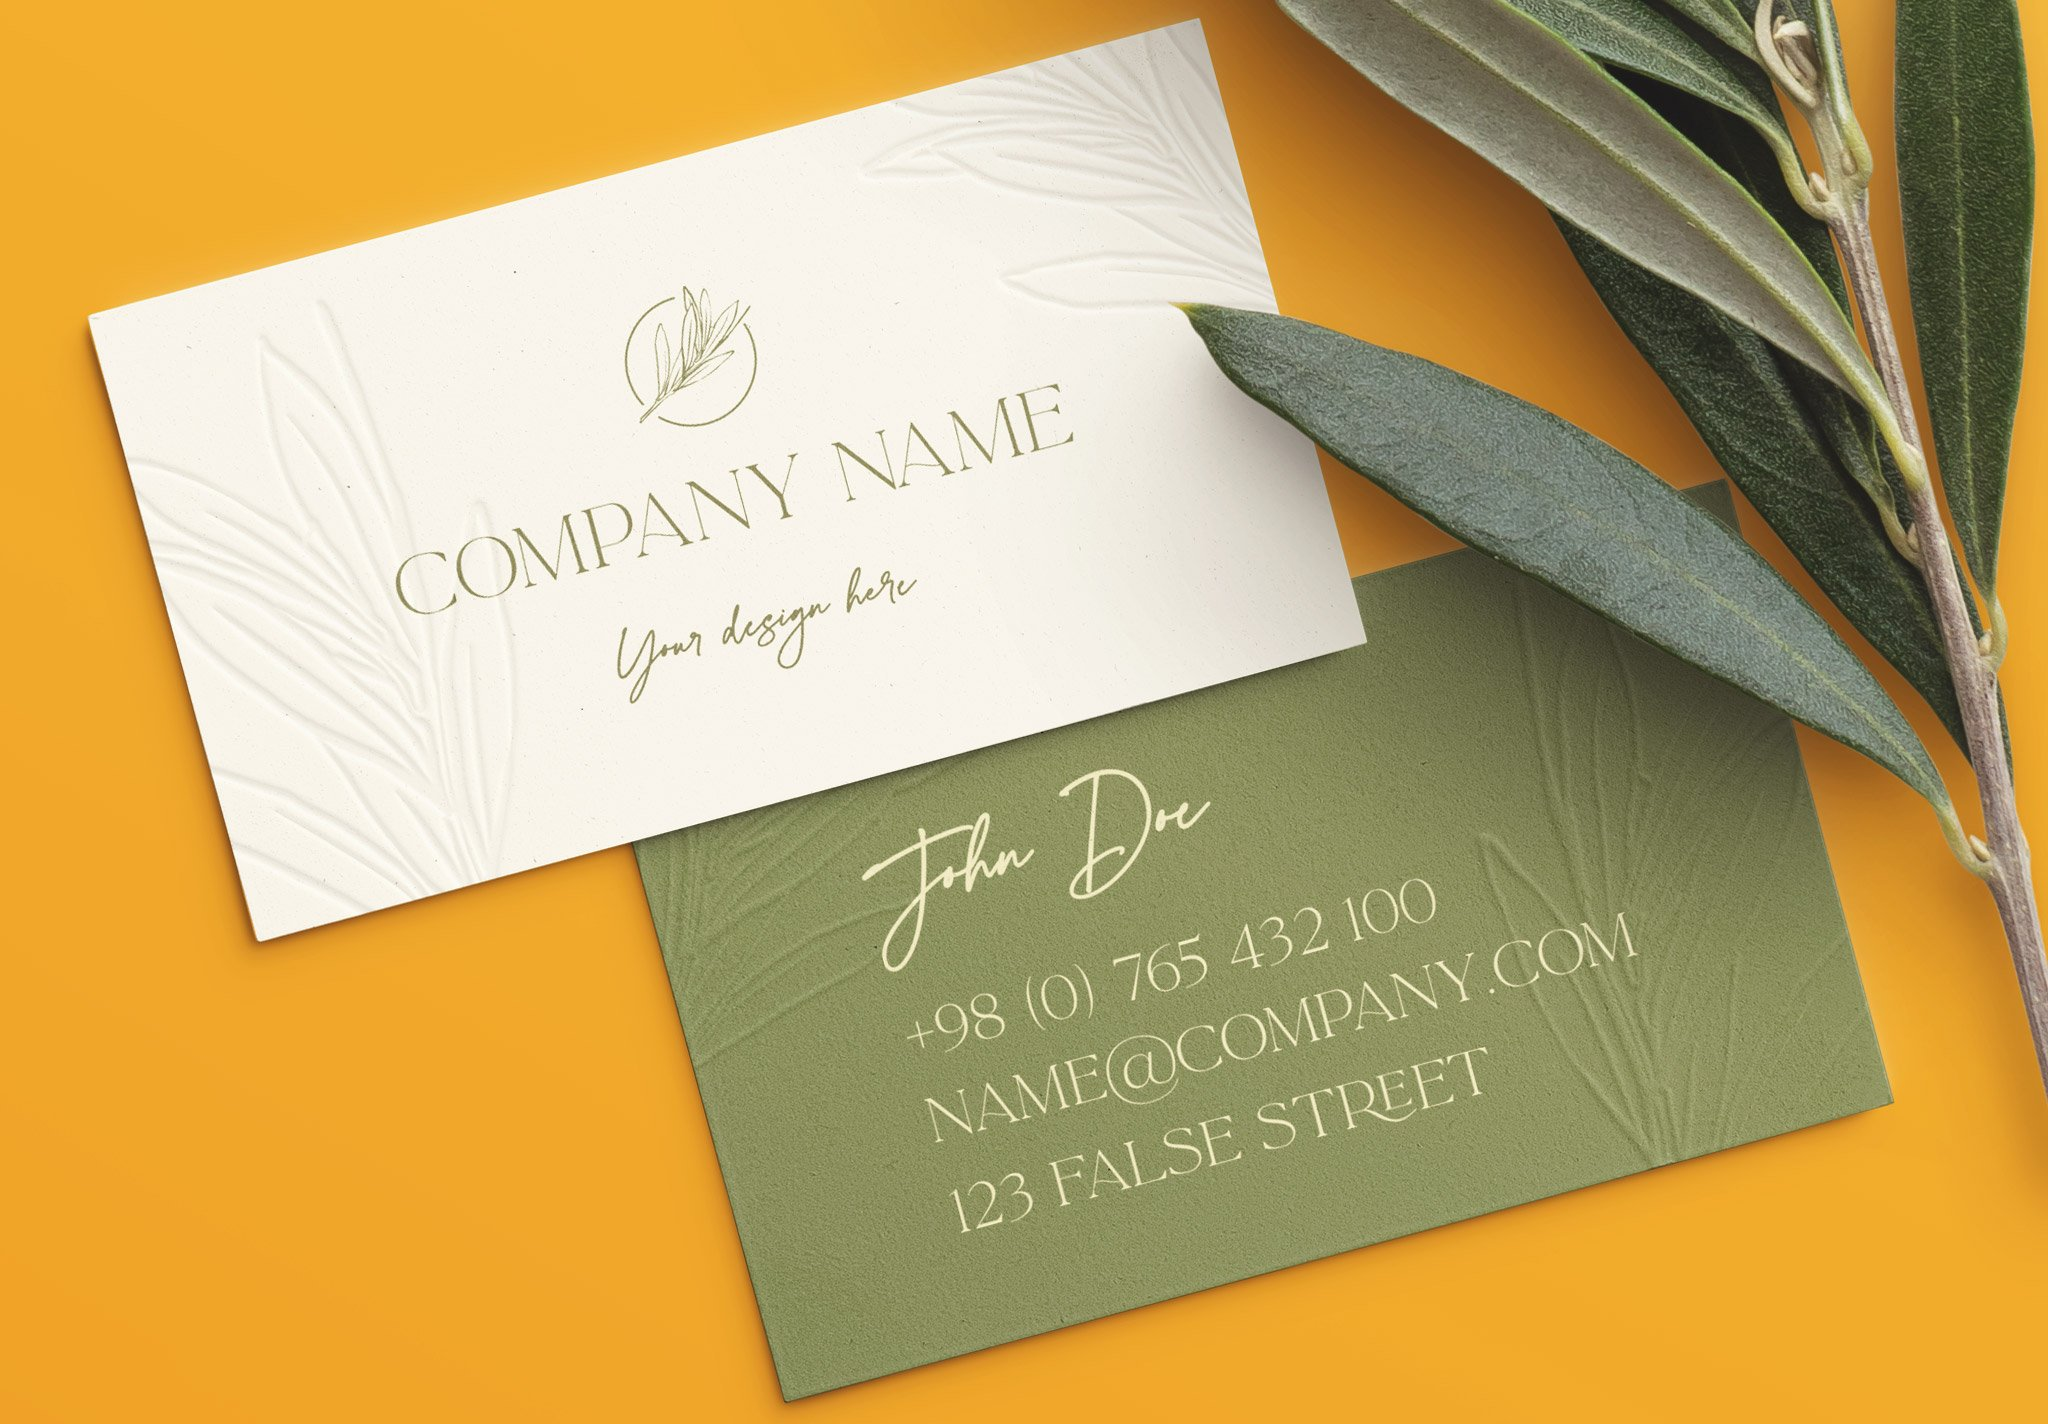 business cards layout 1 image04